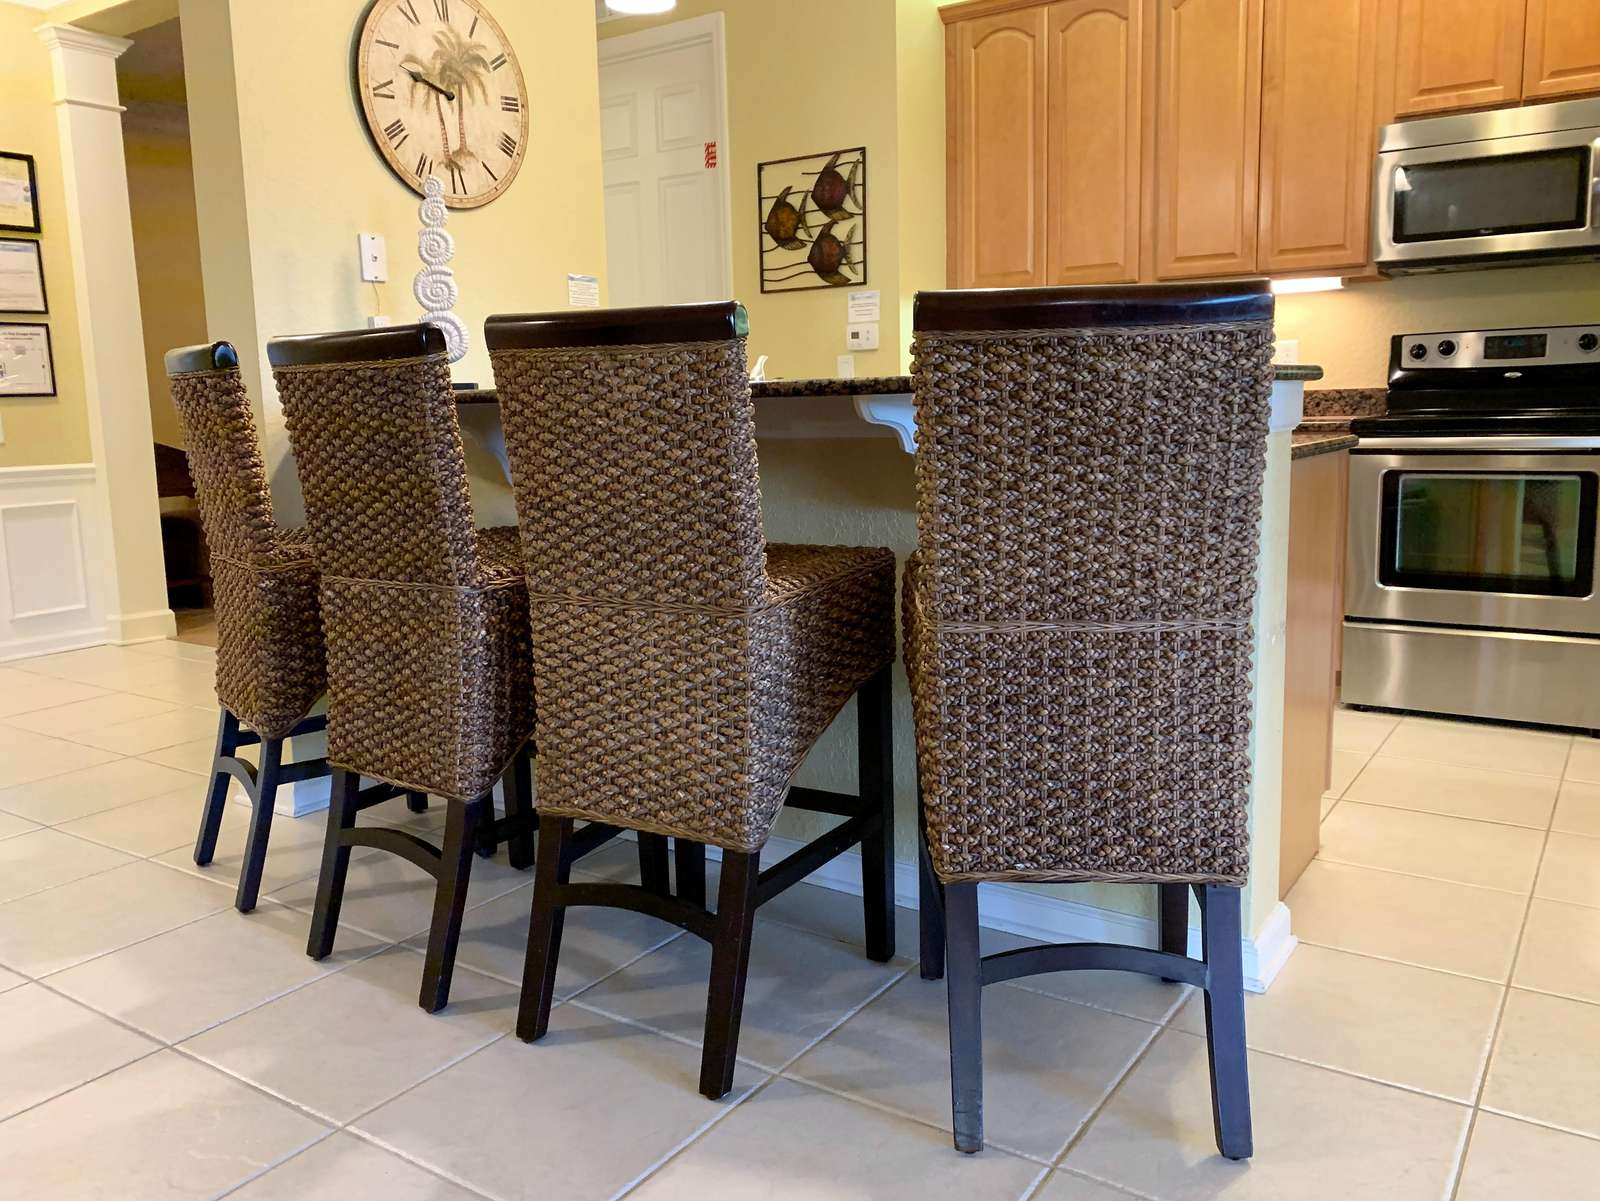 Breakfast counter seating